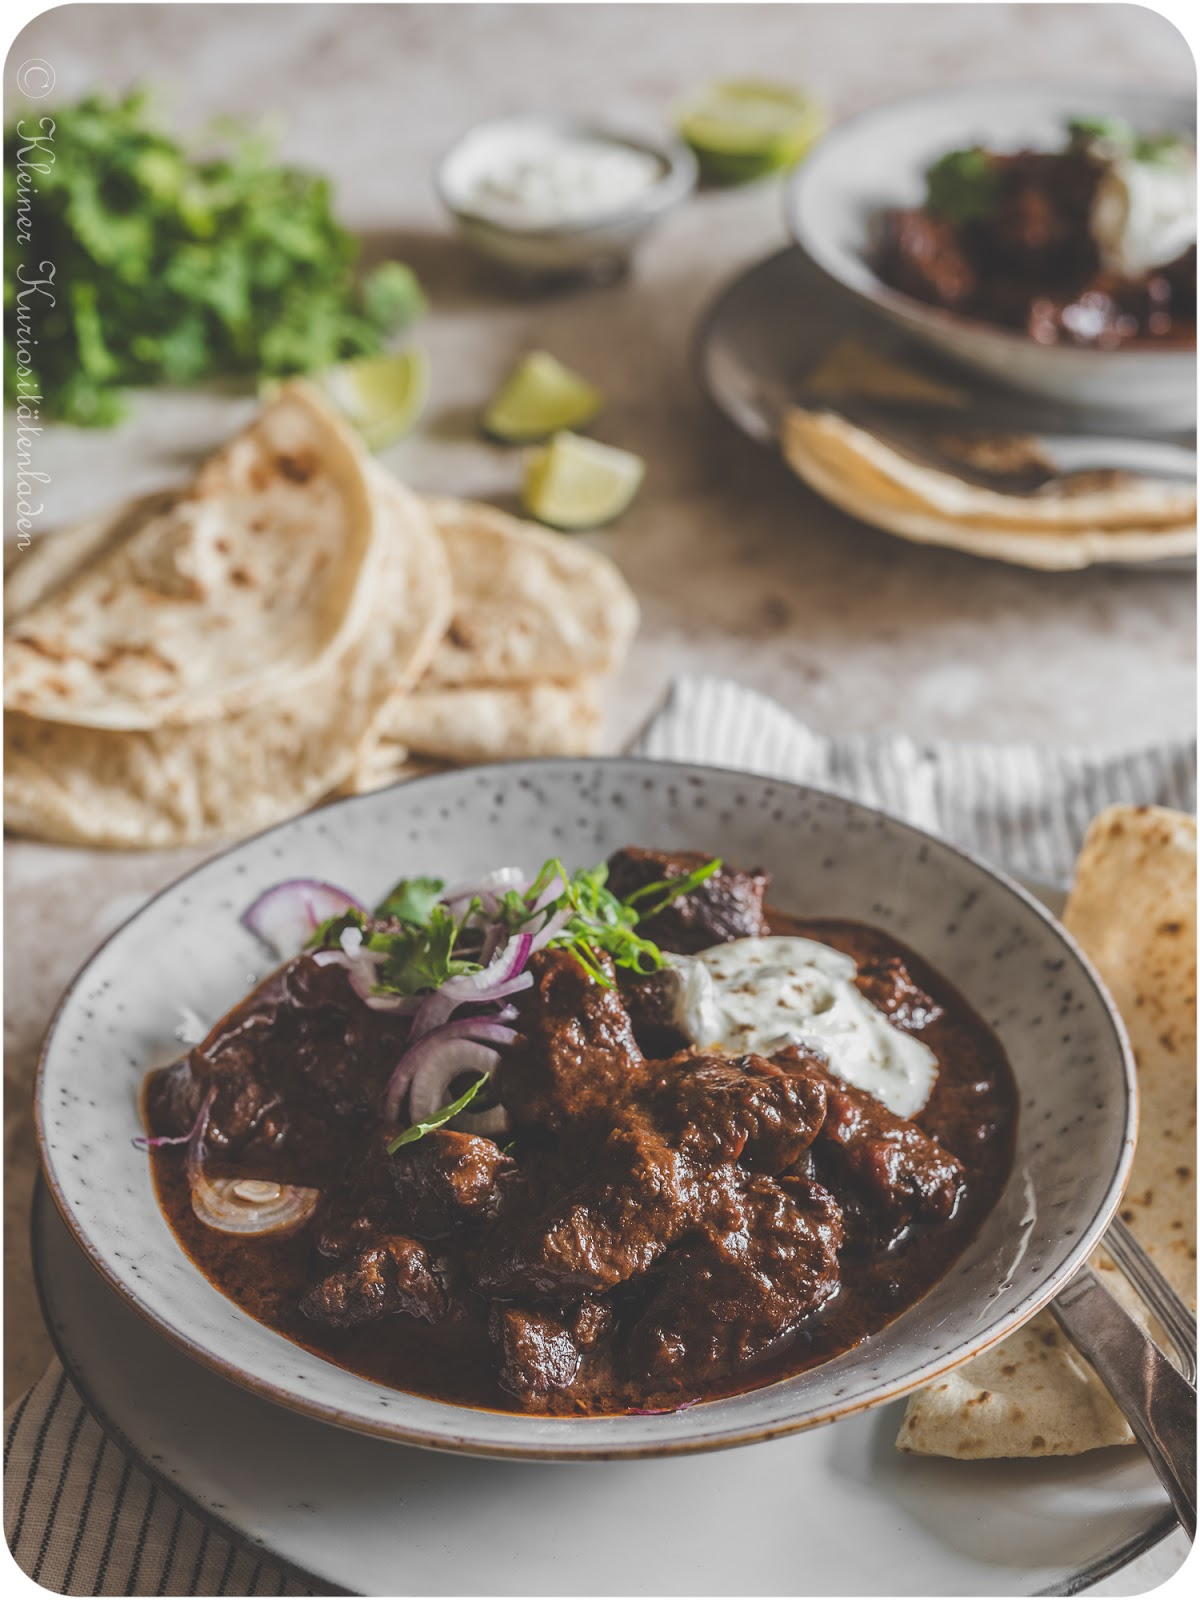 Texanisches Chili con Carne